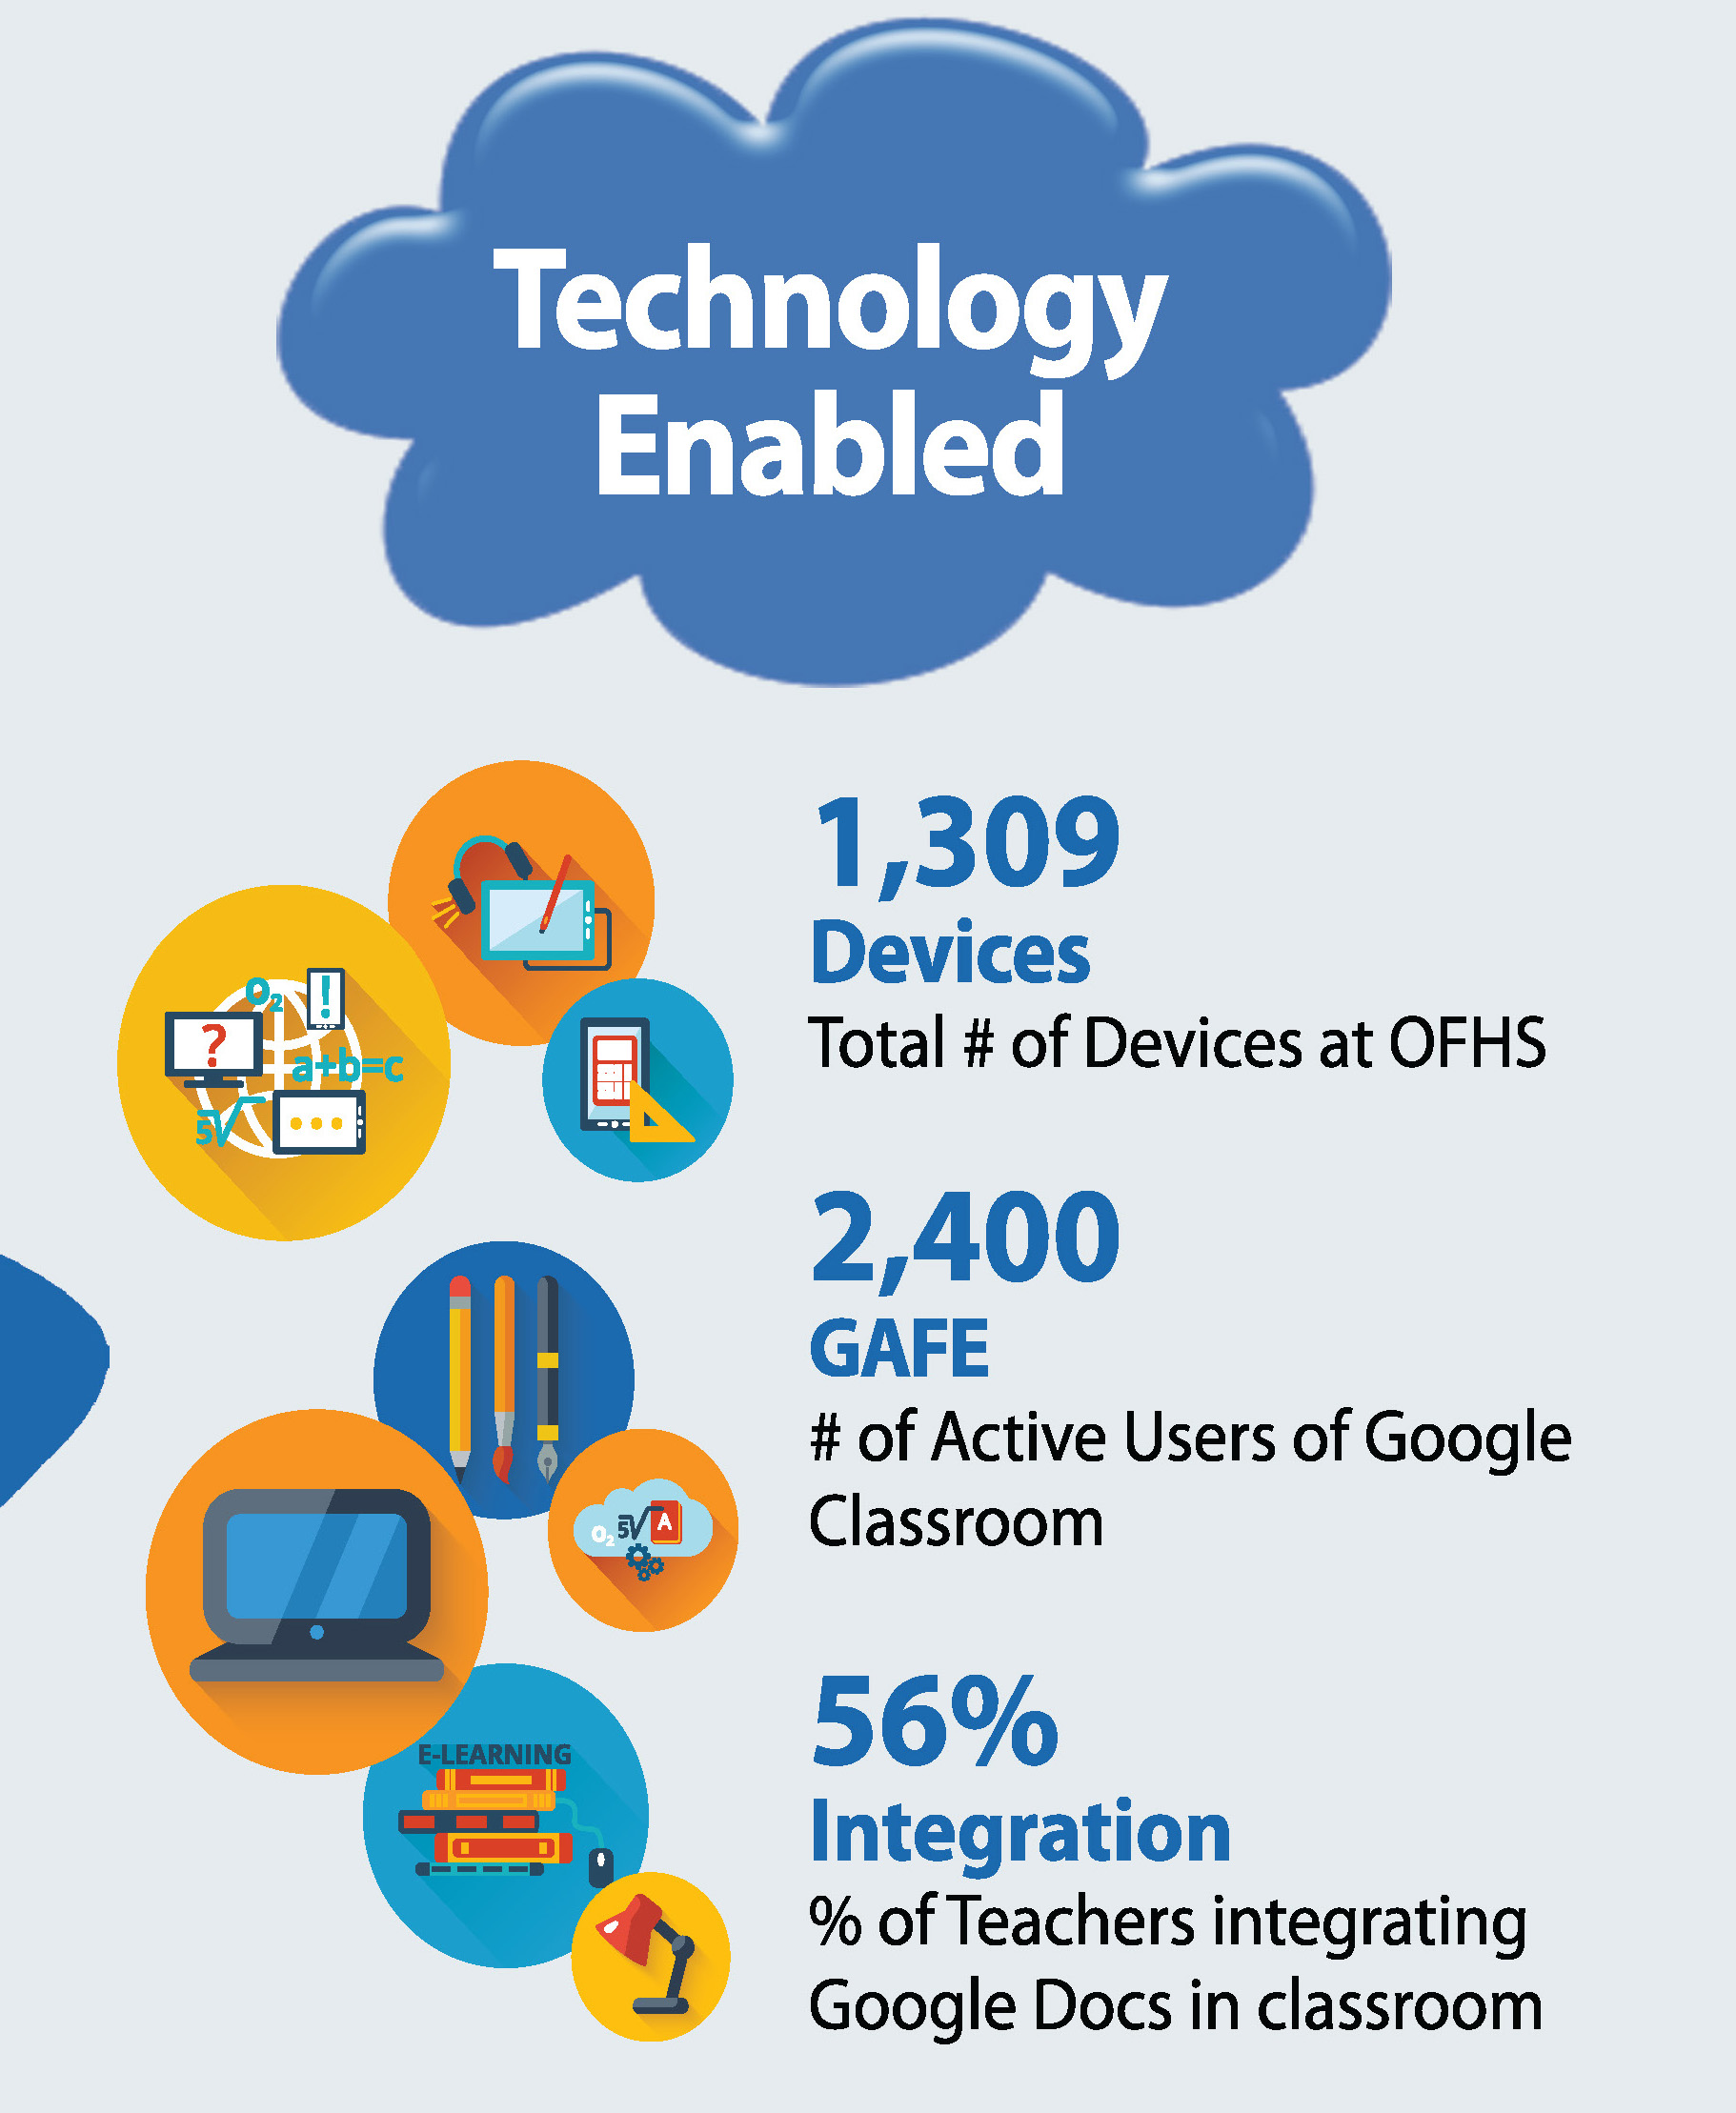 OFHS LOCAL SCORECARD - TECHNOLOGY ENABLED